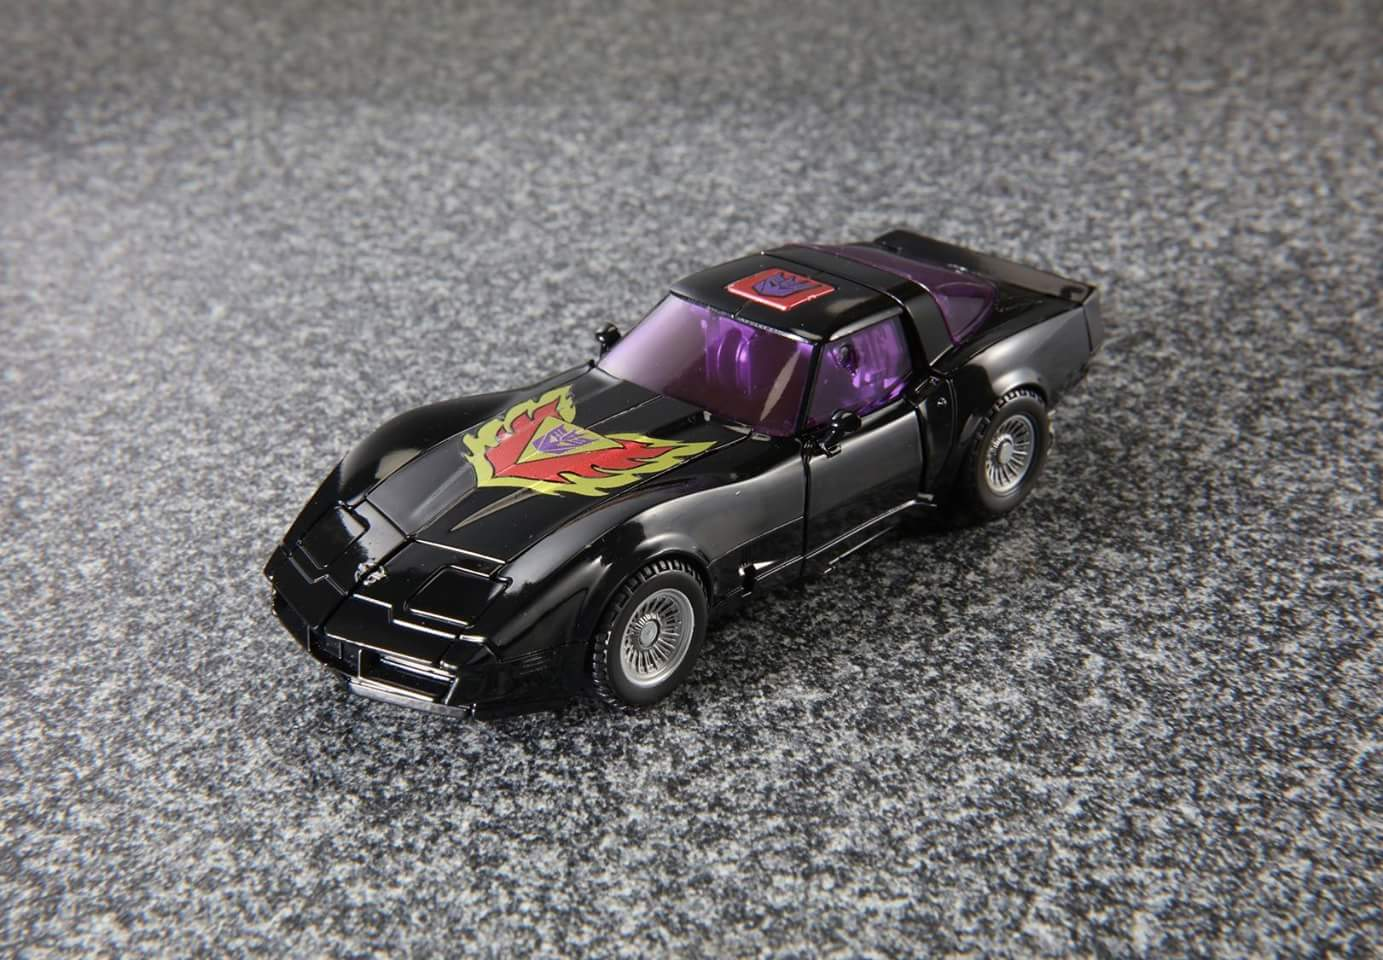 [Masterpiece] MP-25L LoudPedal (Rouge) + MP-26 Road Rage (Noir) ― aka Tracks/Le Sillage Diaclone - Page 2 FGvimm2R